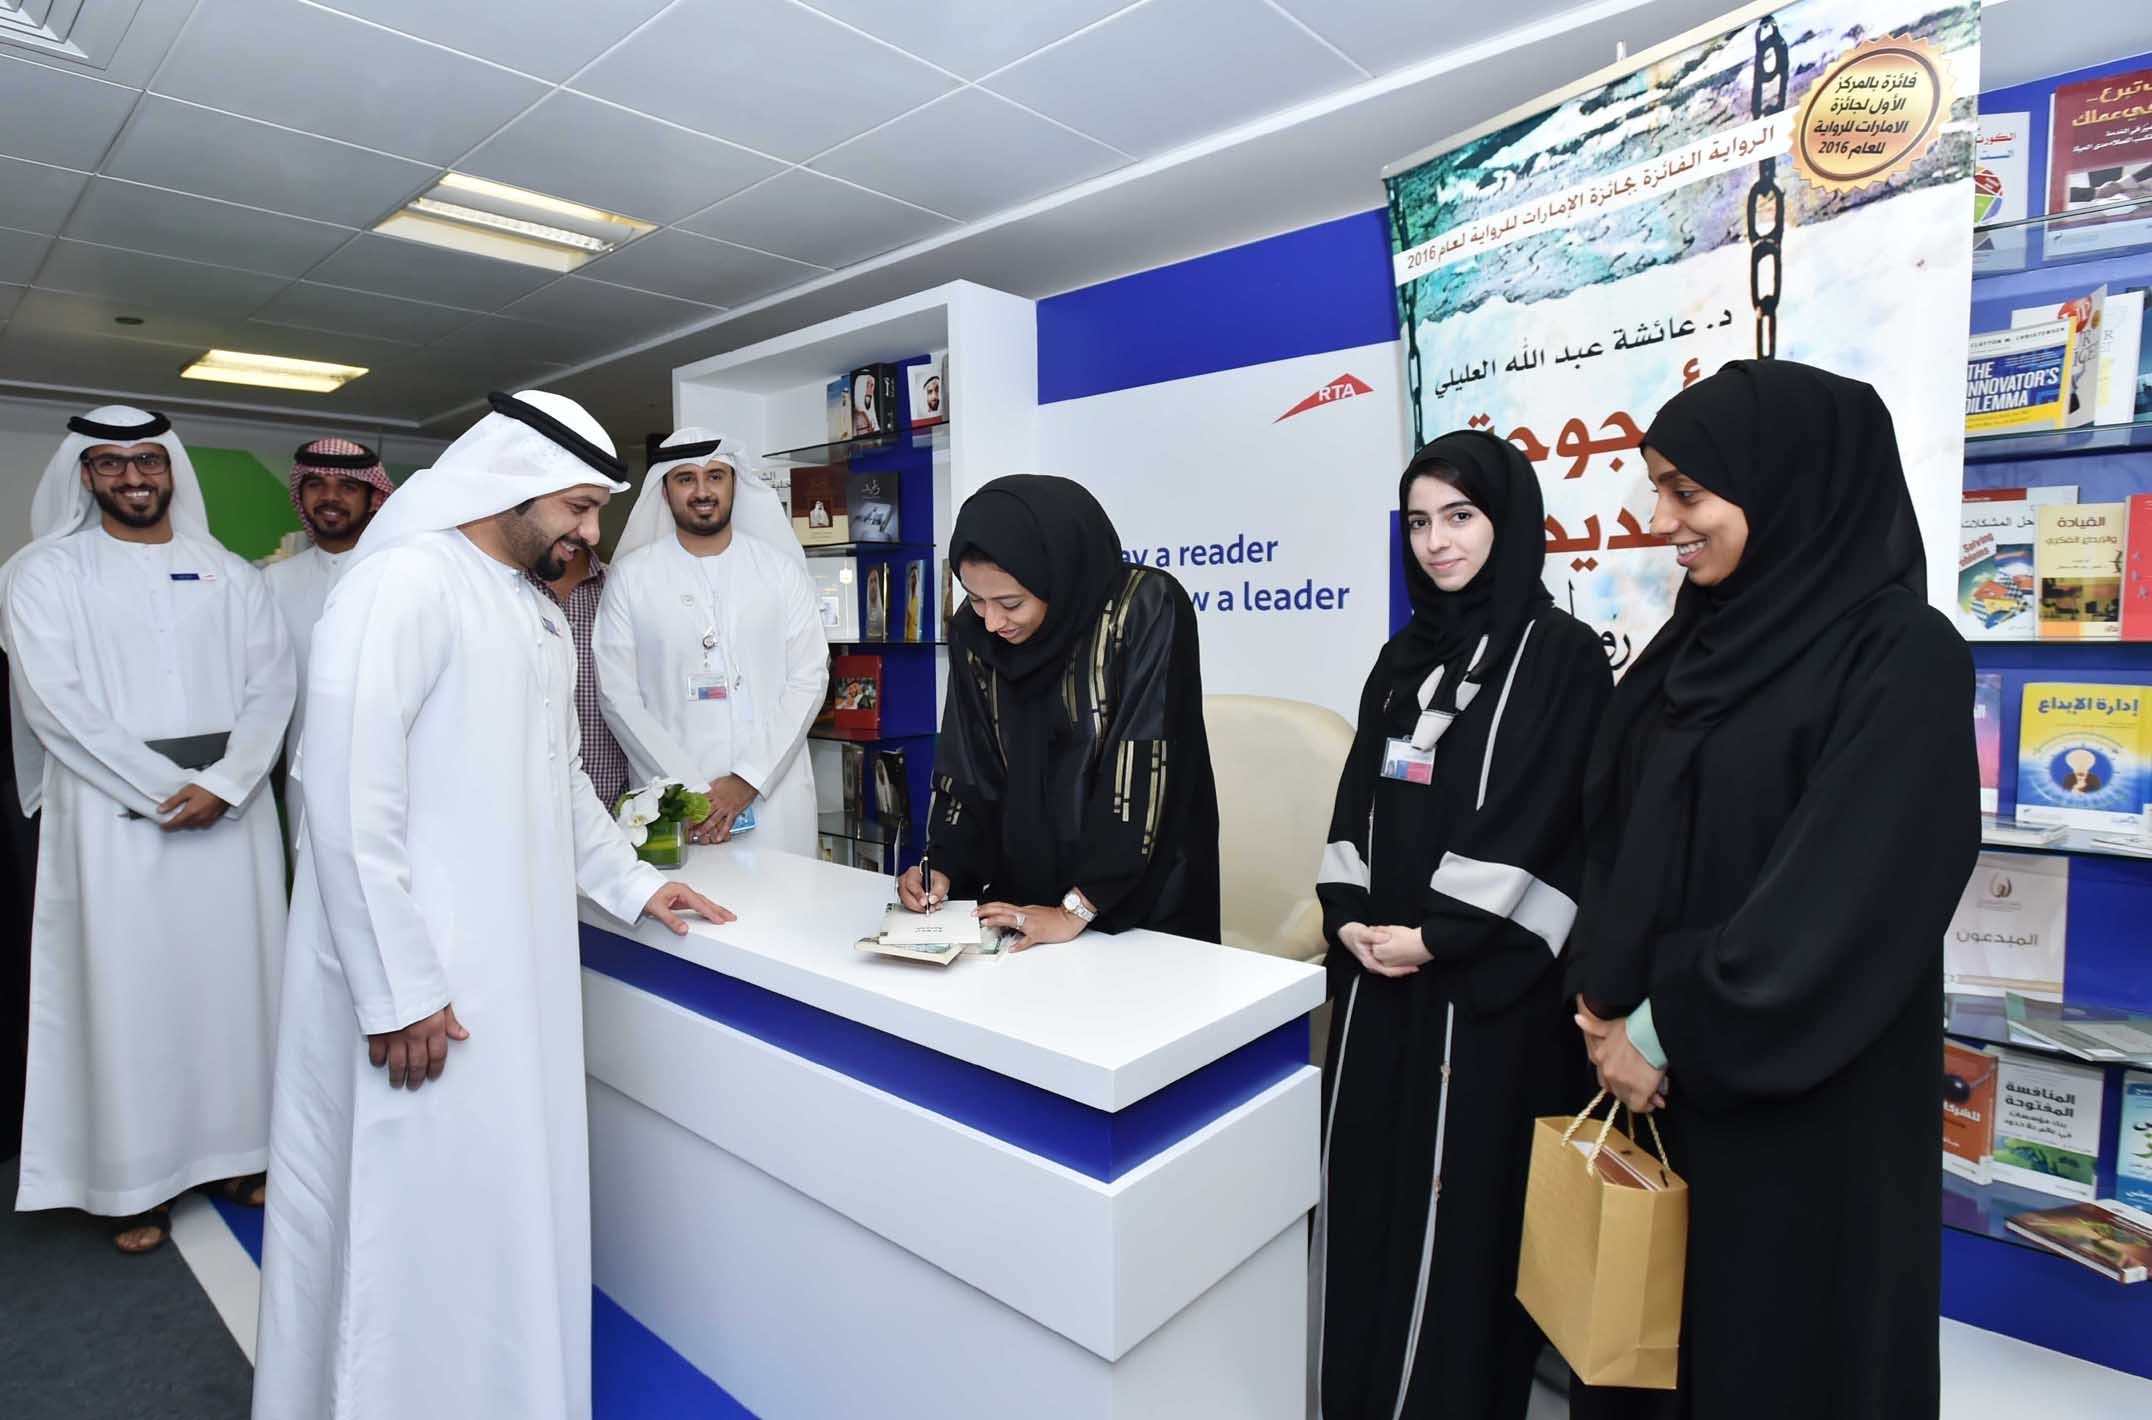 rta's youth council launches quality events marking uae innovation month2